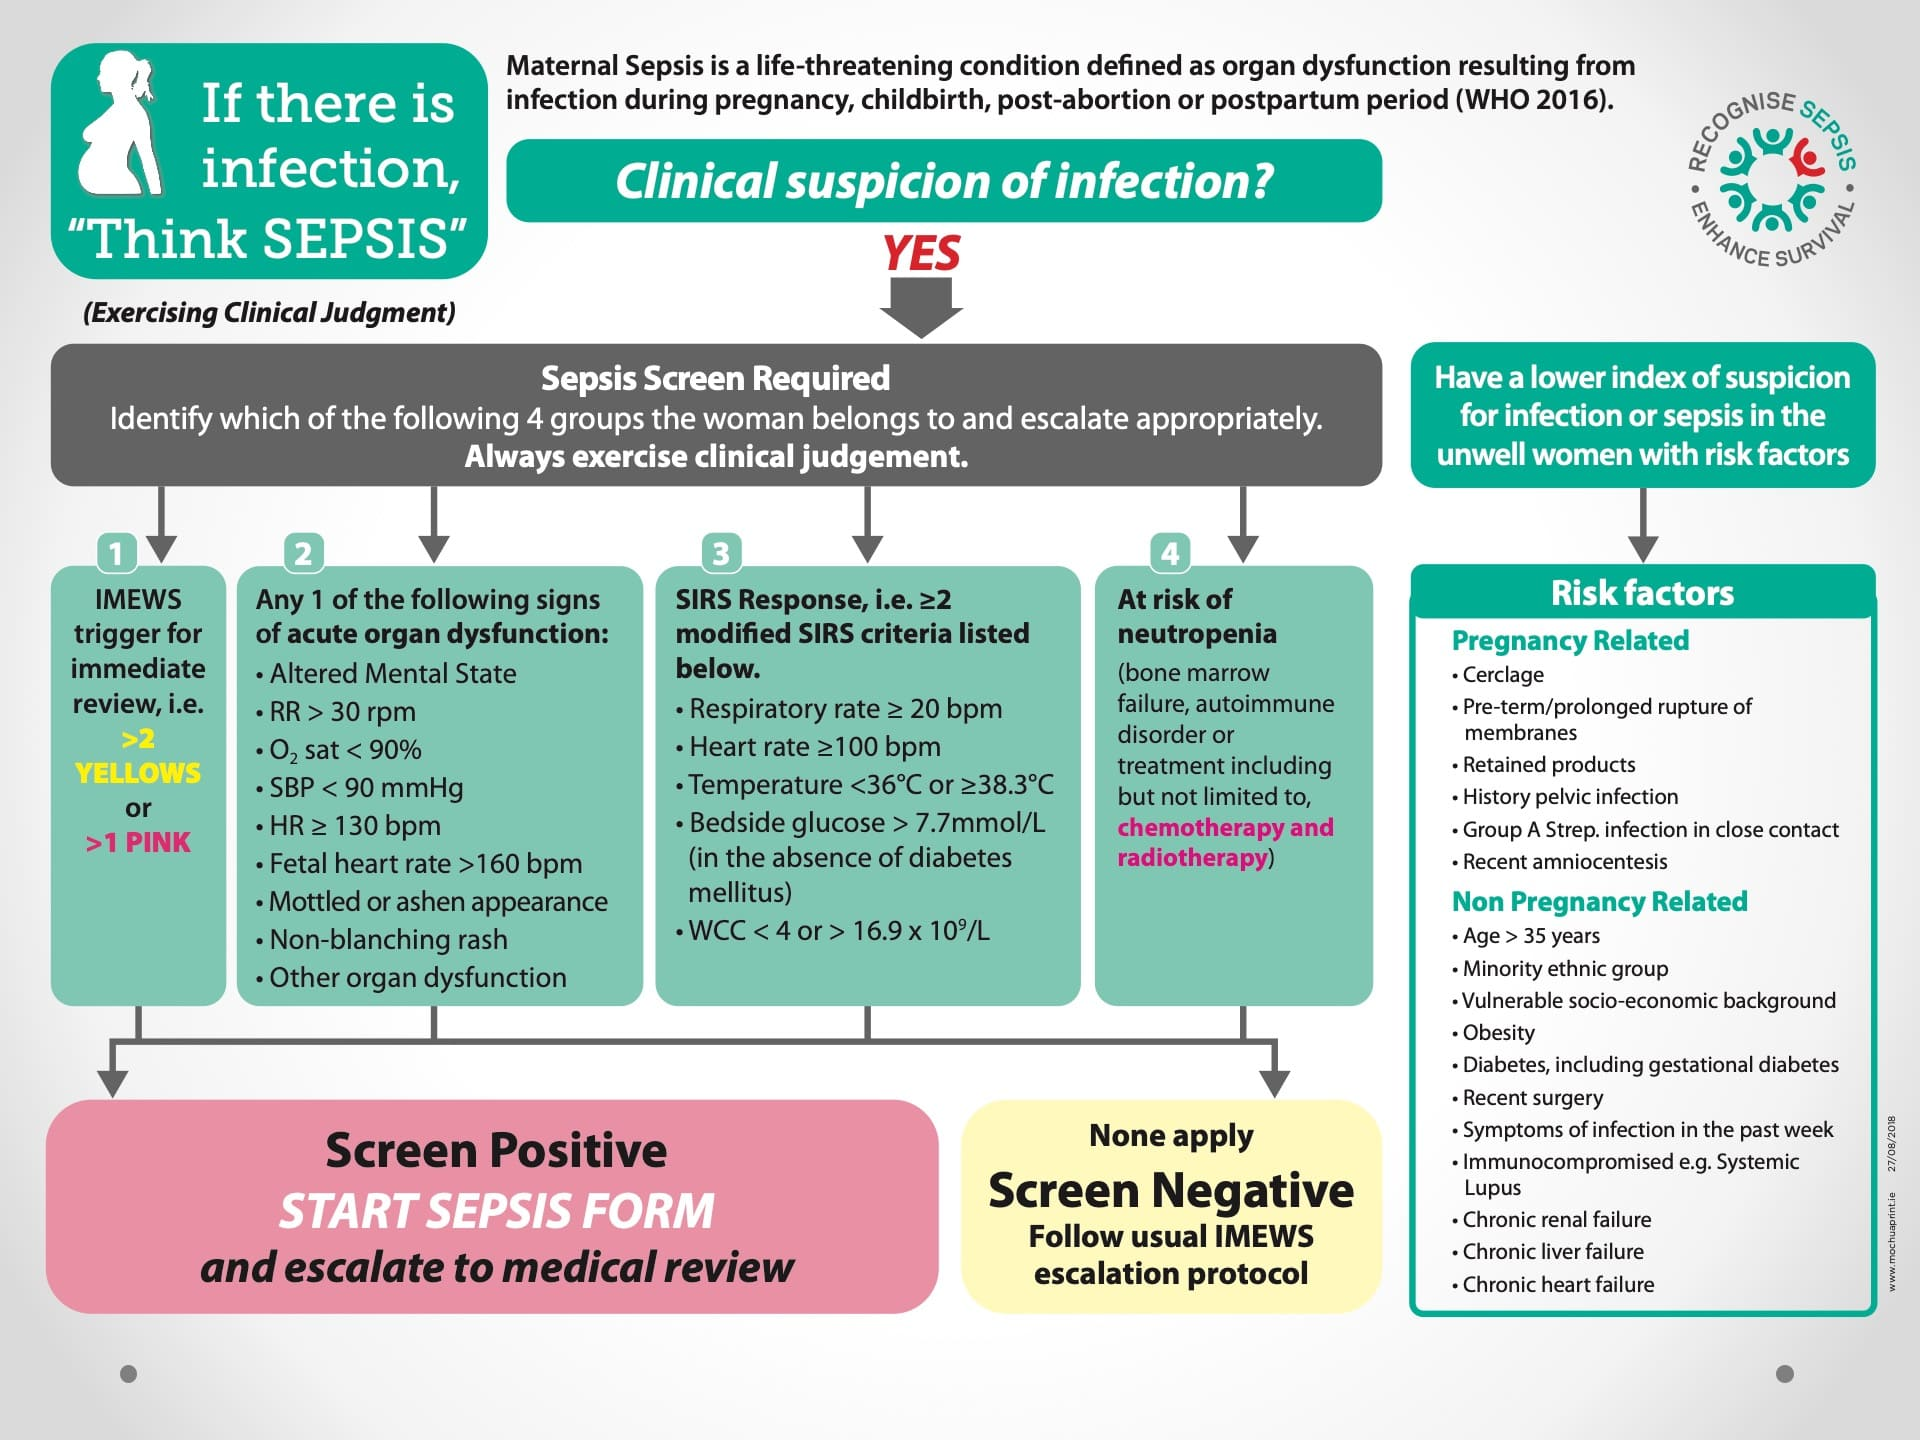 The National Sepsis Plan in Ireland5.jpeg